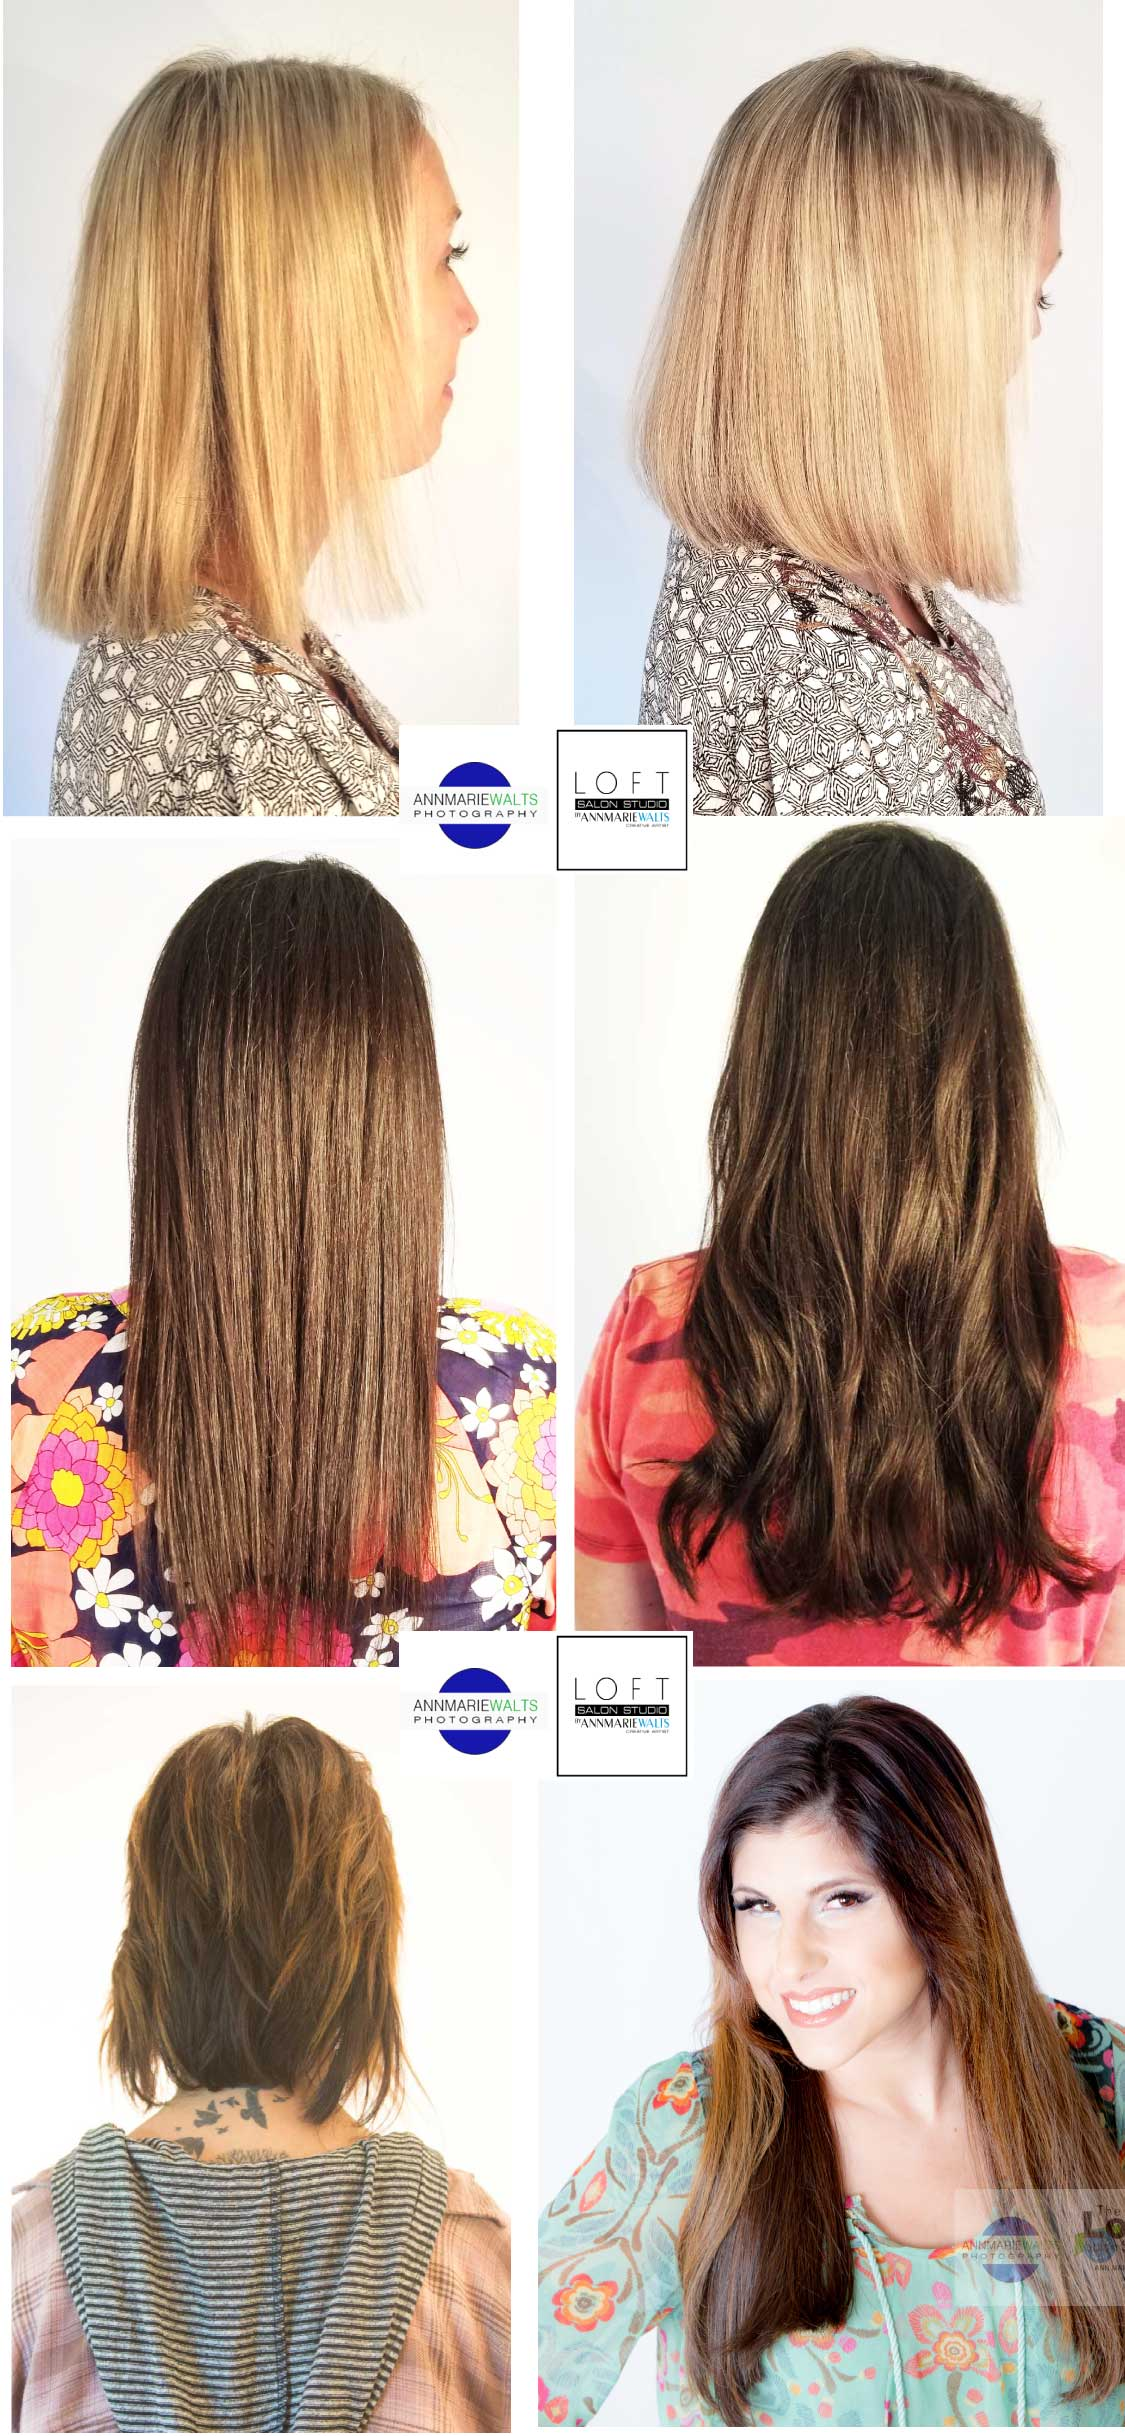 Reasons To Wear Hair Extensions